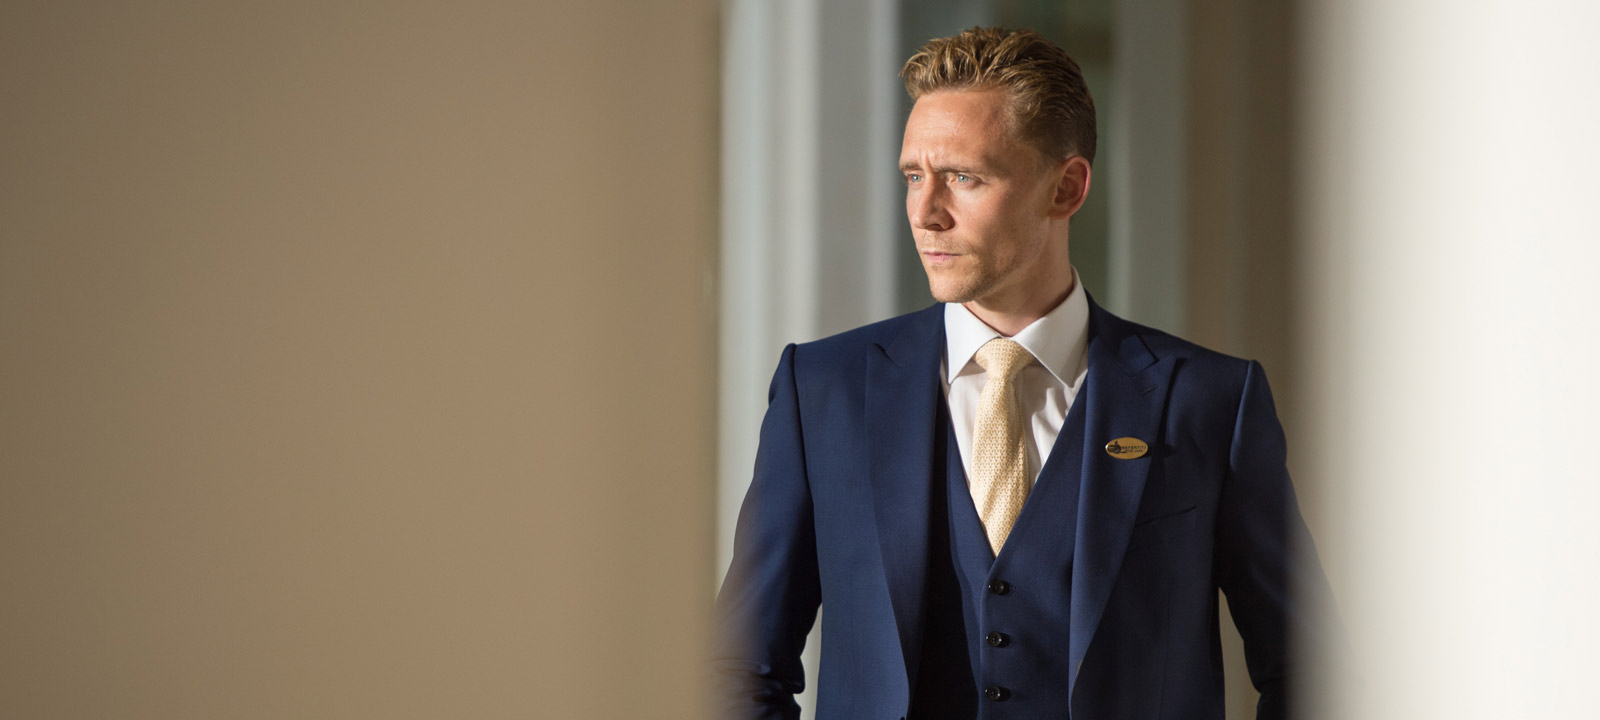 the-night-manager-101-jonathan-hiddleston-2-800×600